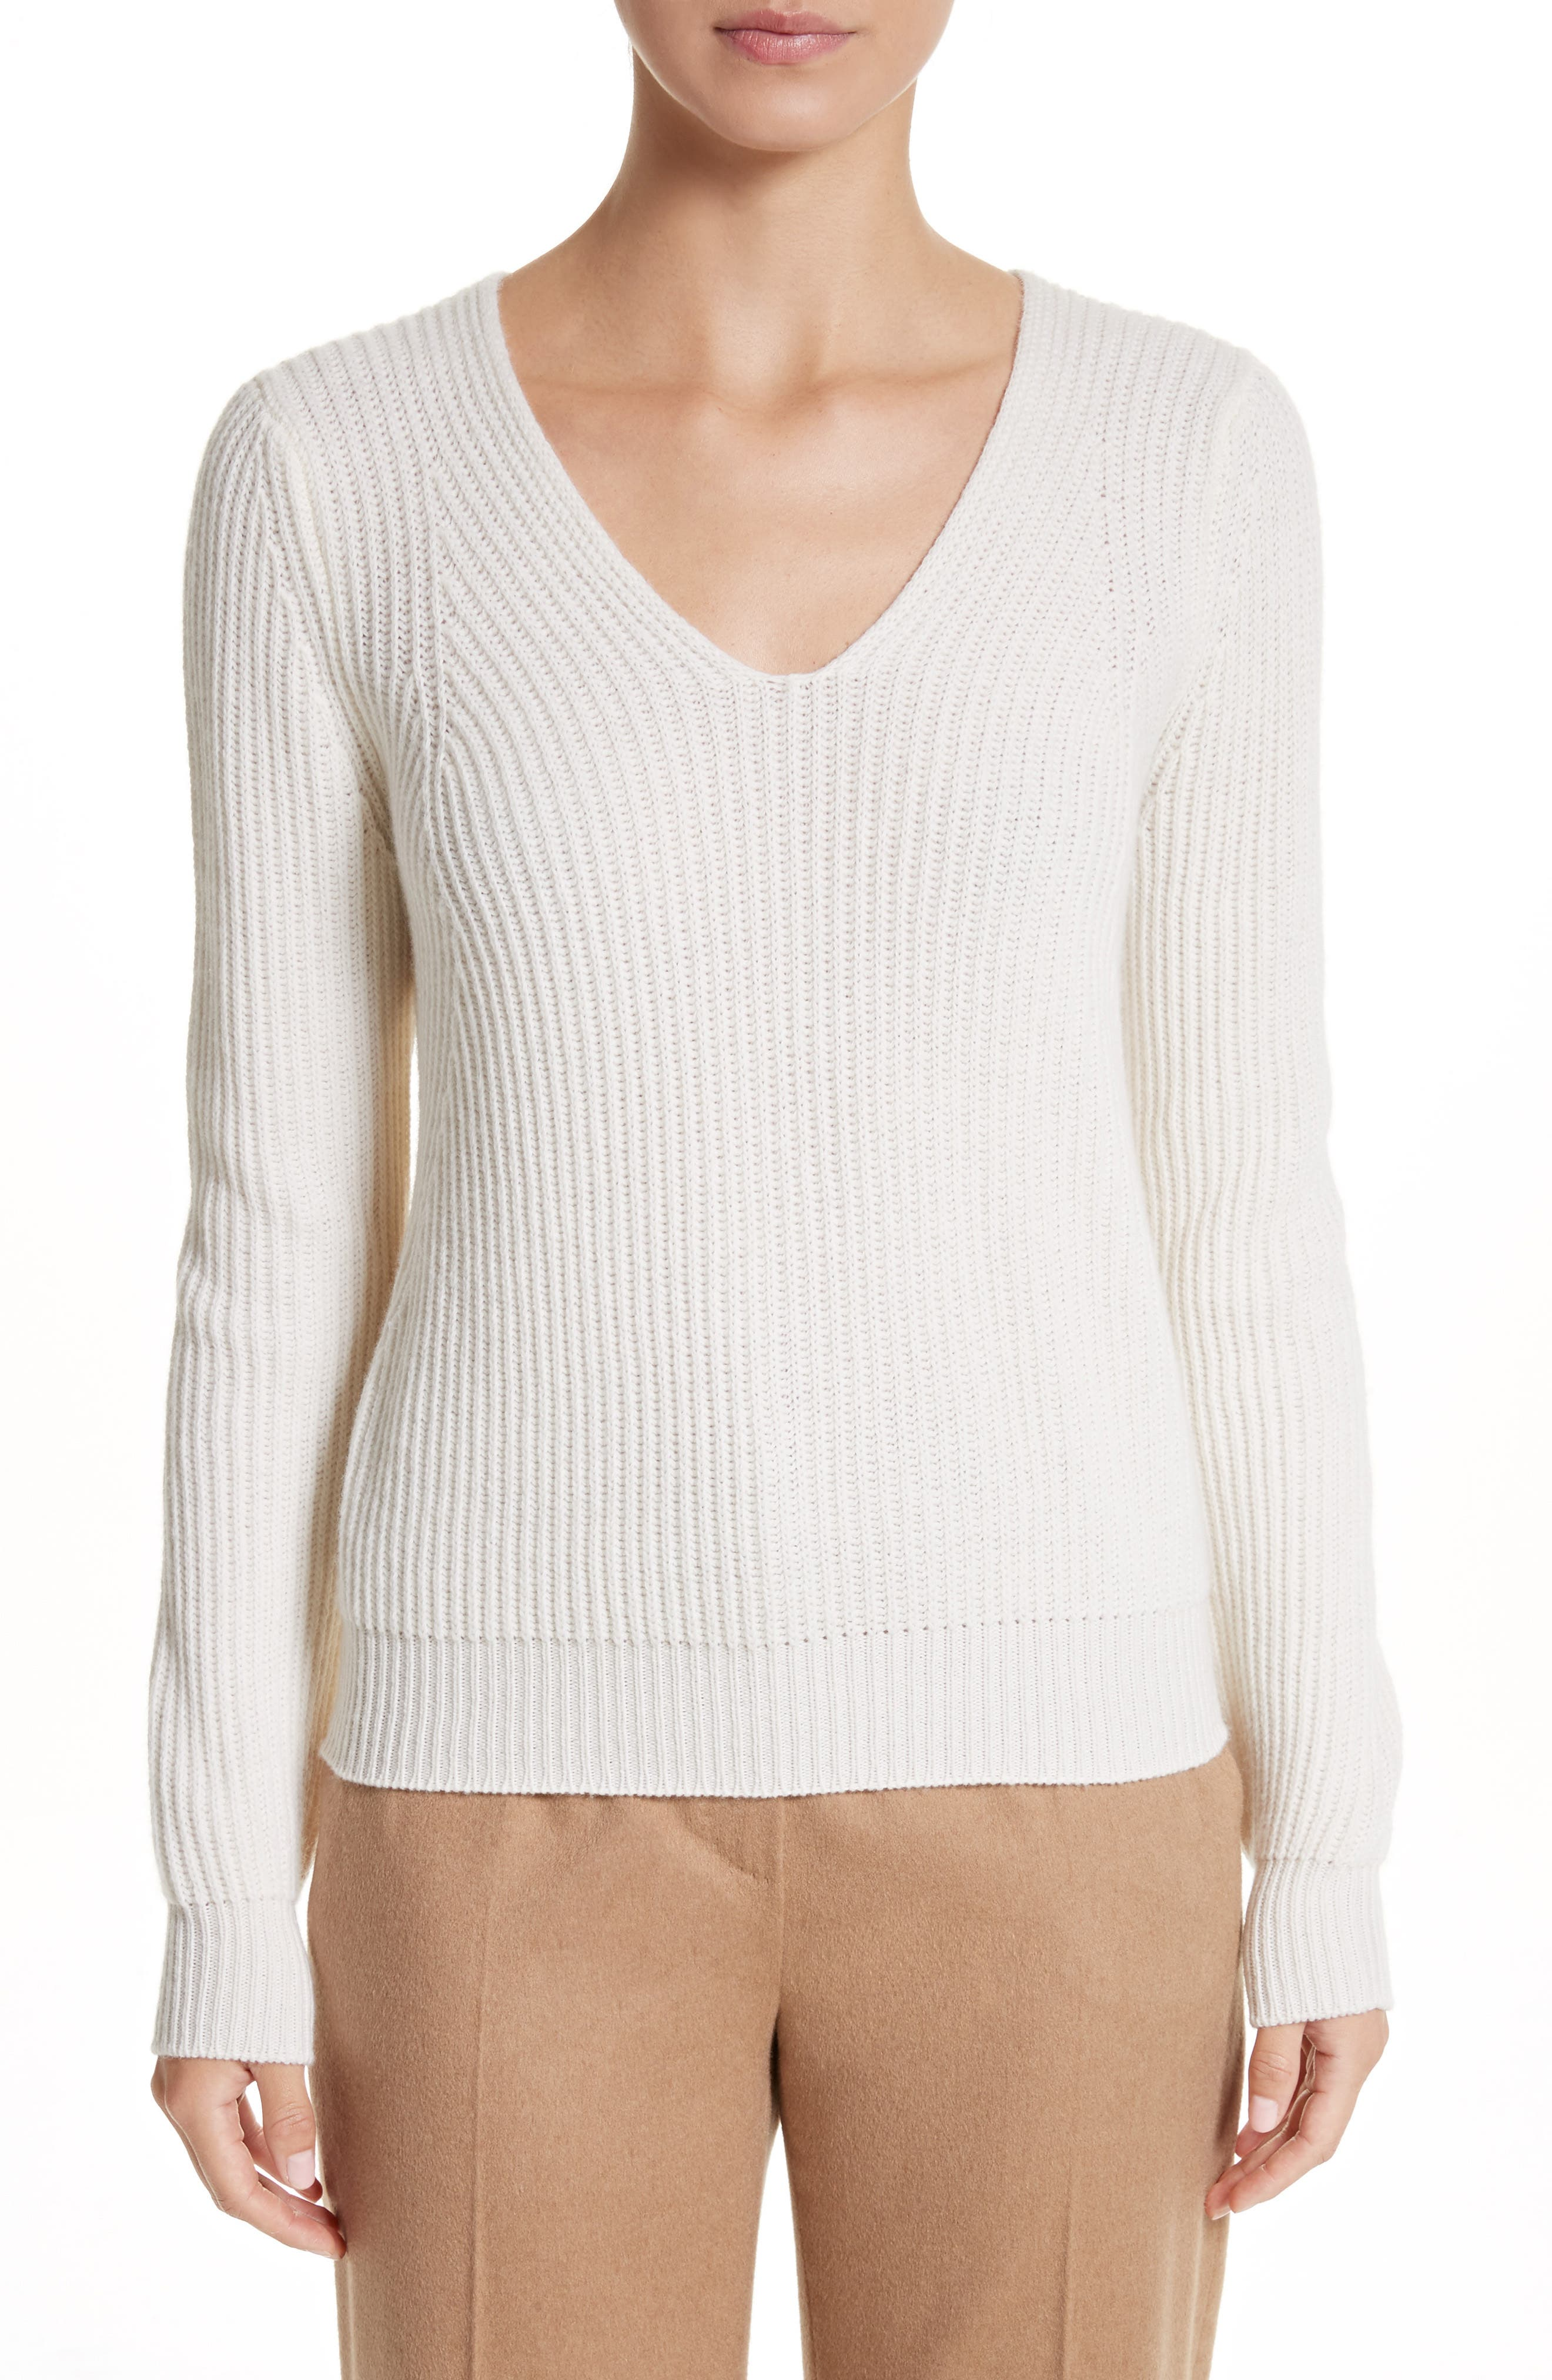 Alternate Image 1 Selected - Max Mara Sax Wool & Cashmere Sweater